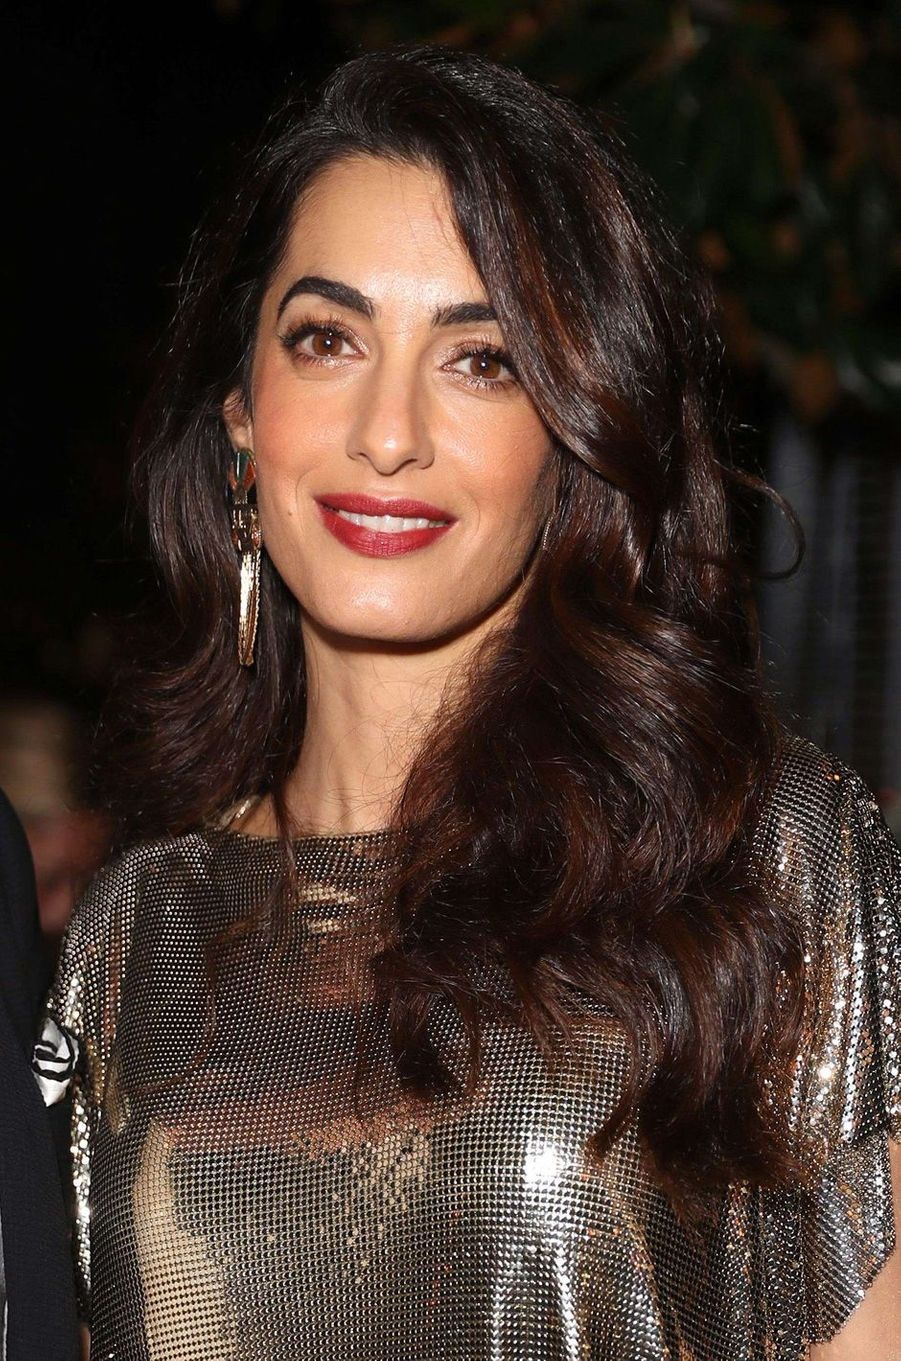 Amal Clooney à Los Angeles, le 5 octobre 2017.